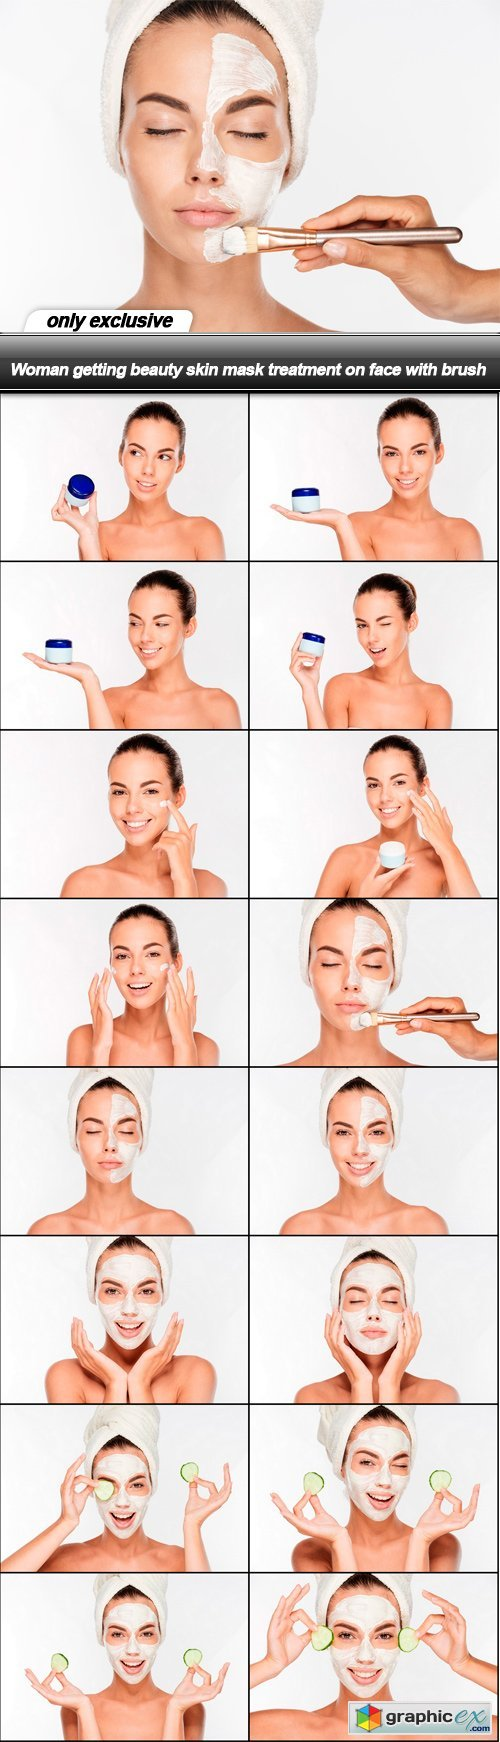 Woman getting beauty skin mask treatment on face with brush - 16 UHQ JPEG